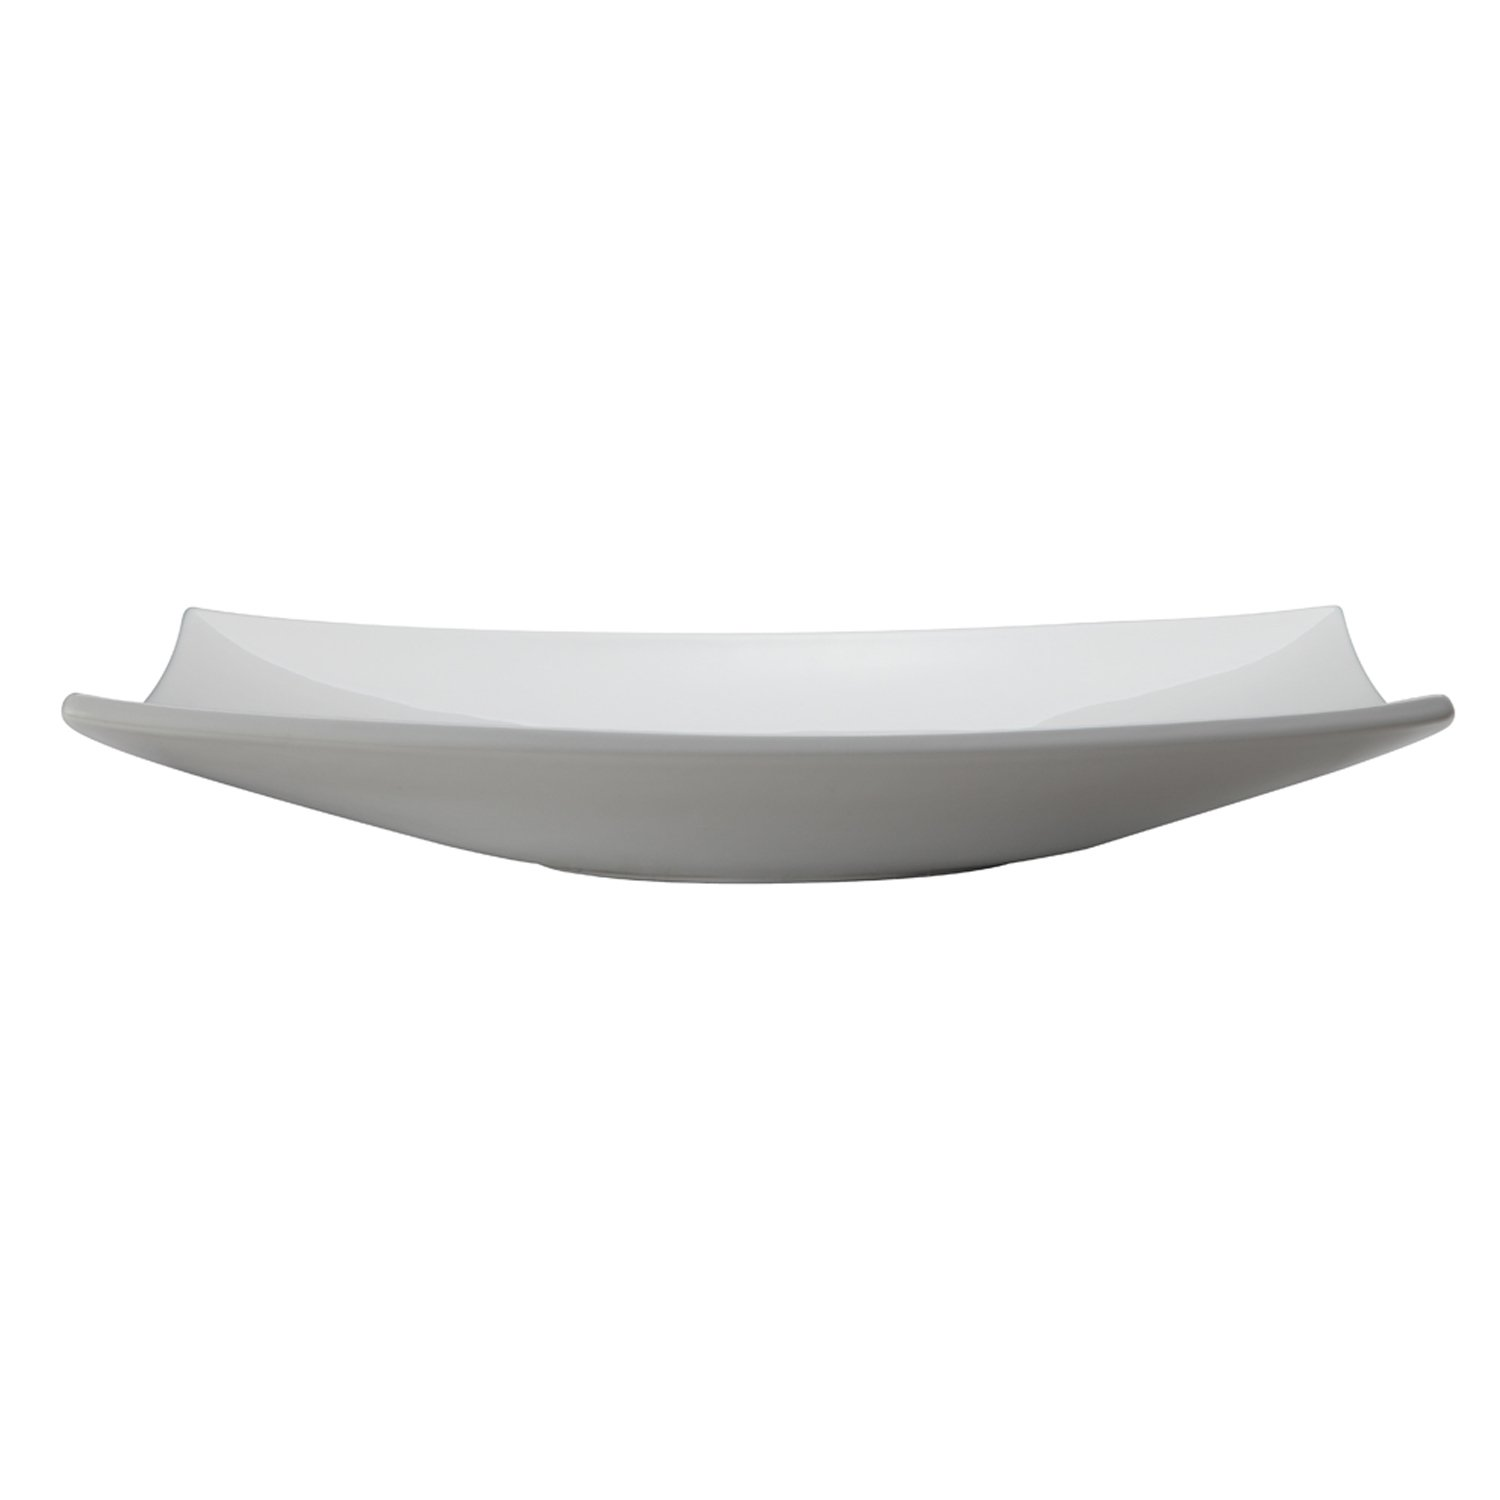 DECOLAV 1443-CWH Iris Classically Redefined Rectangular Vitreous China Above-Counter Lavatory Sink, White by Decolav